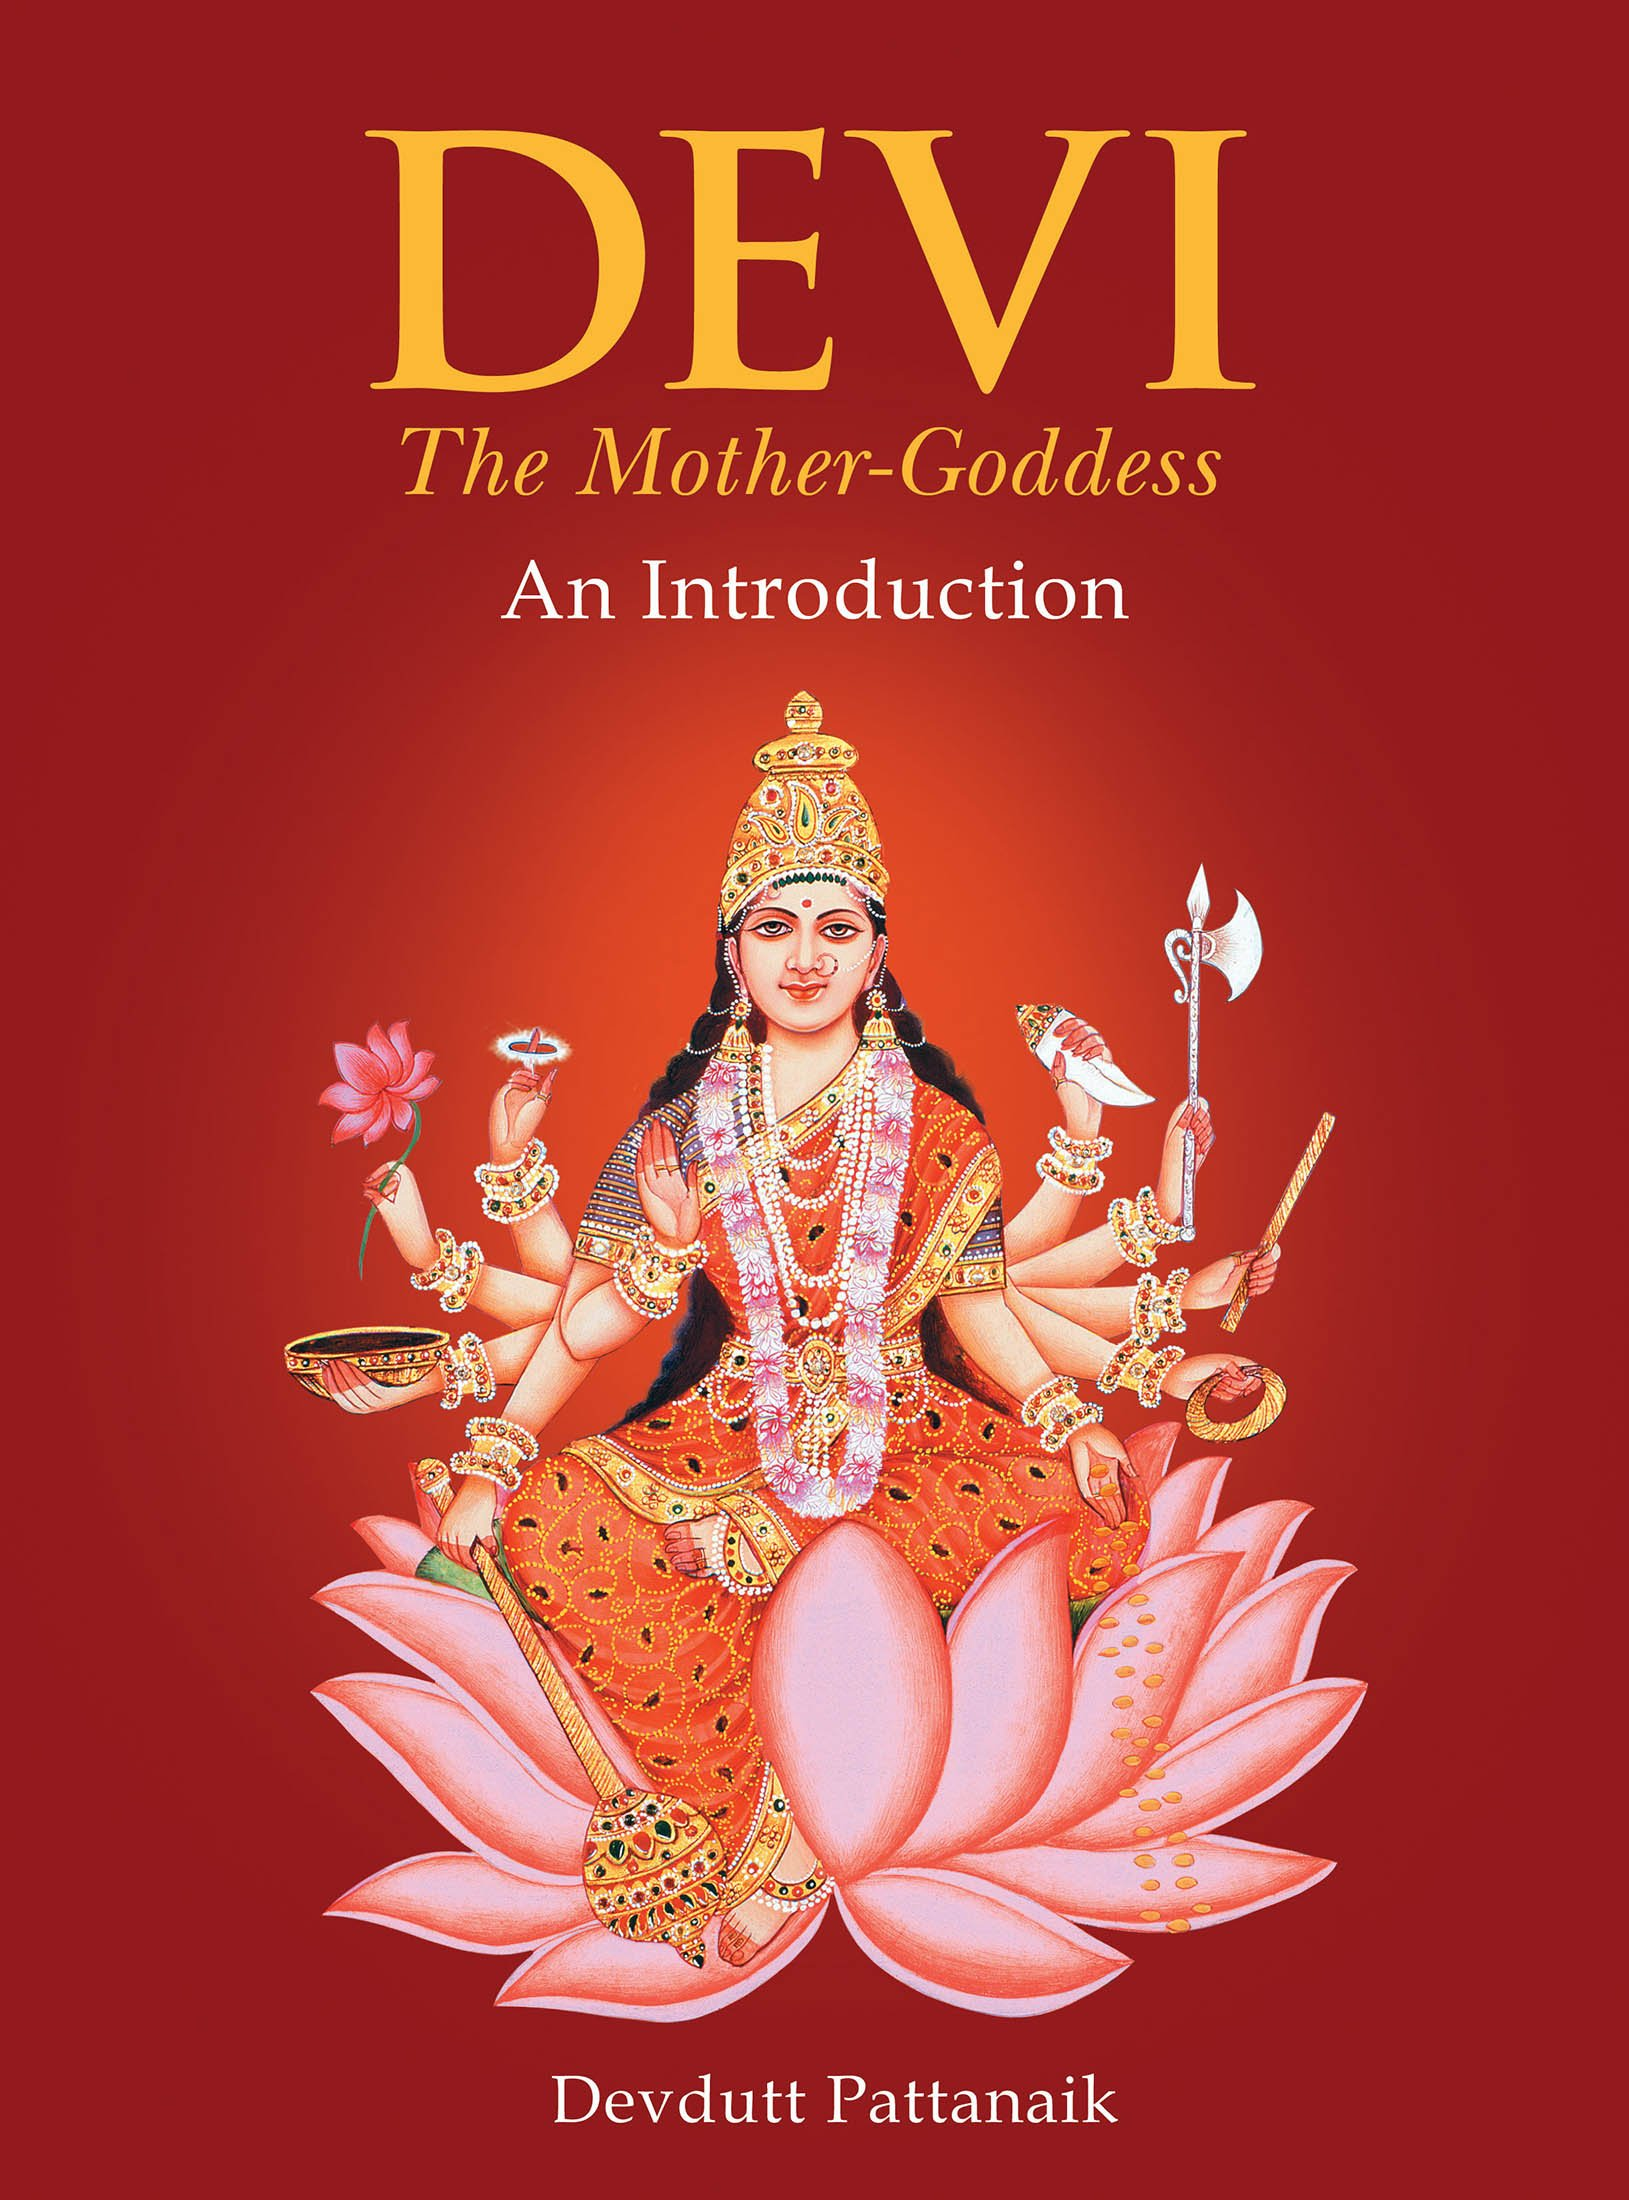 Devi/The Mother Goddess An Introduction